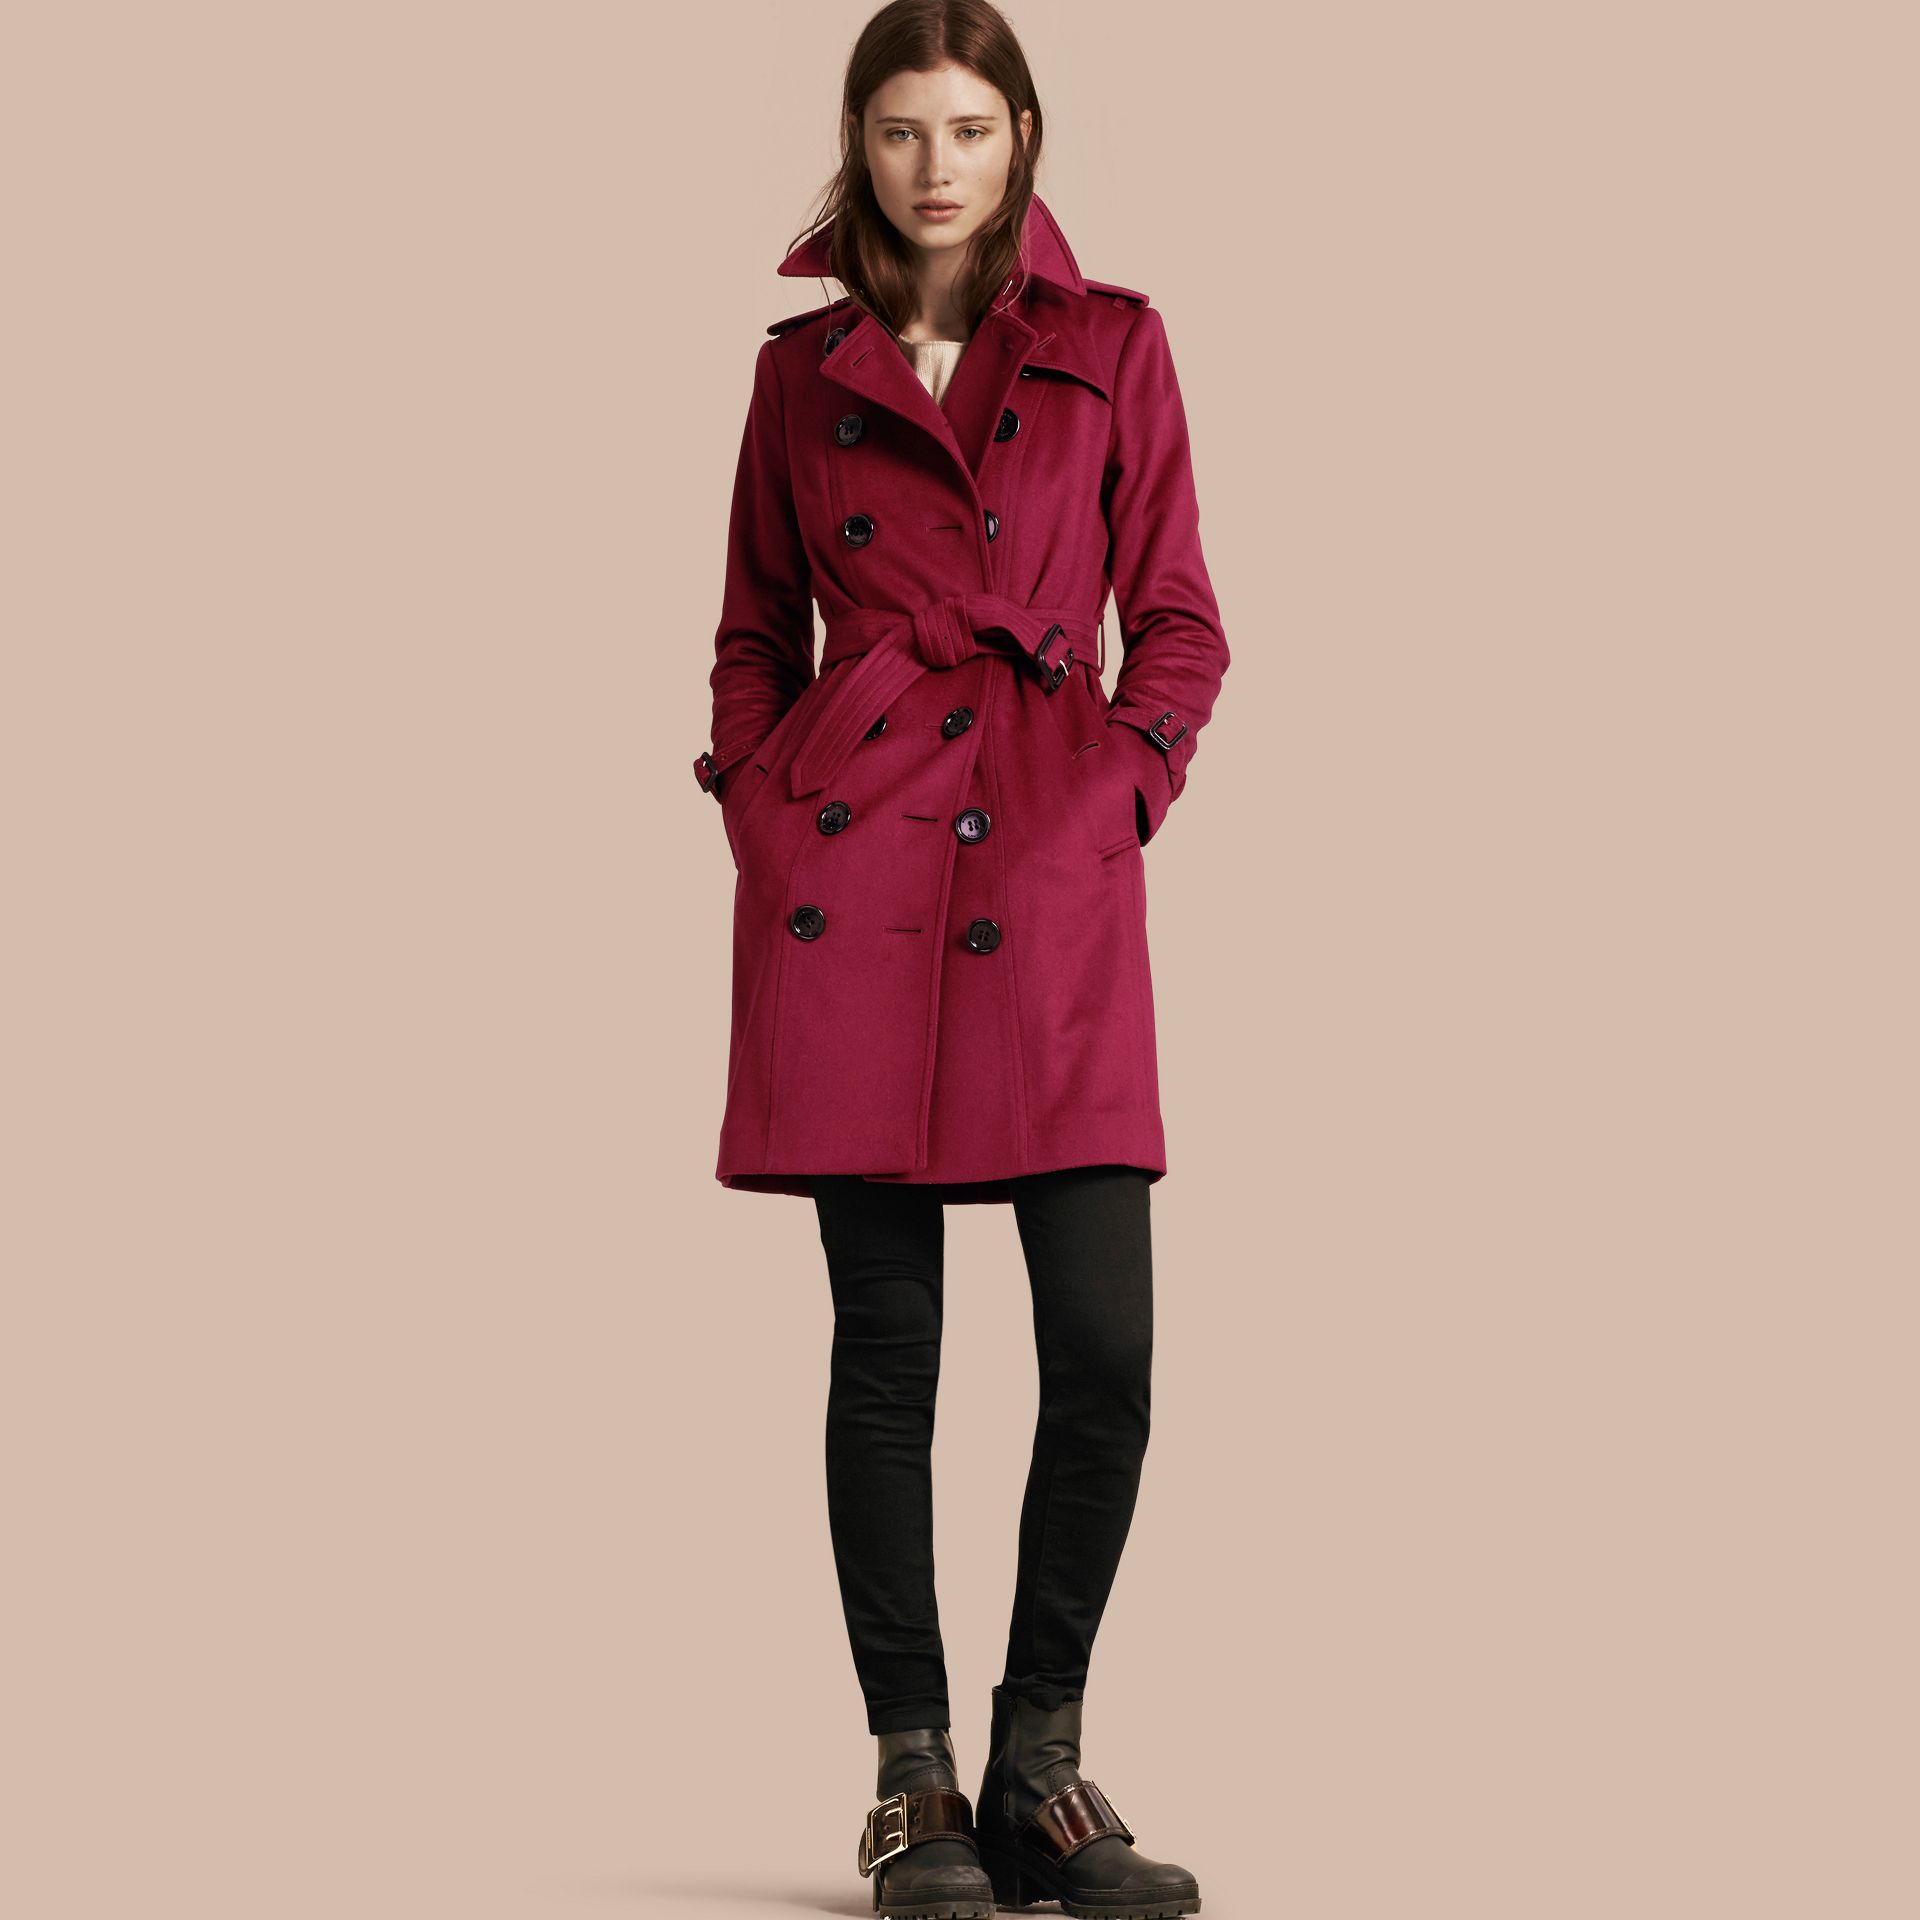 Cherry pink Sandringham Fit Cashmere Trench Coat Cherry Pink - gallery image 1